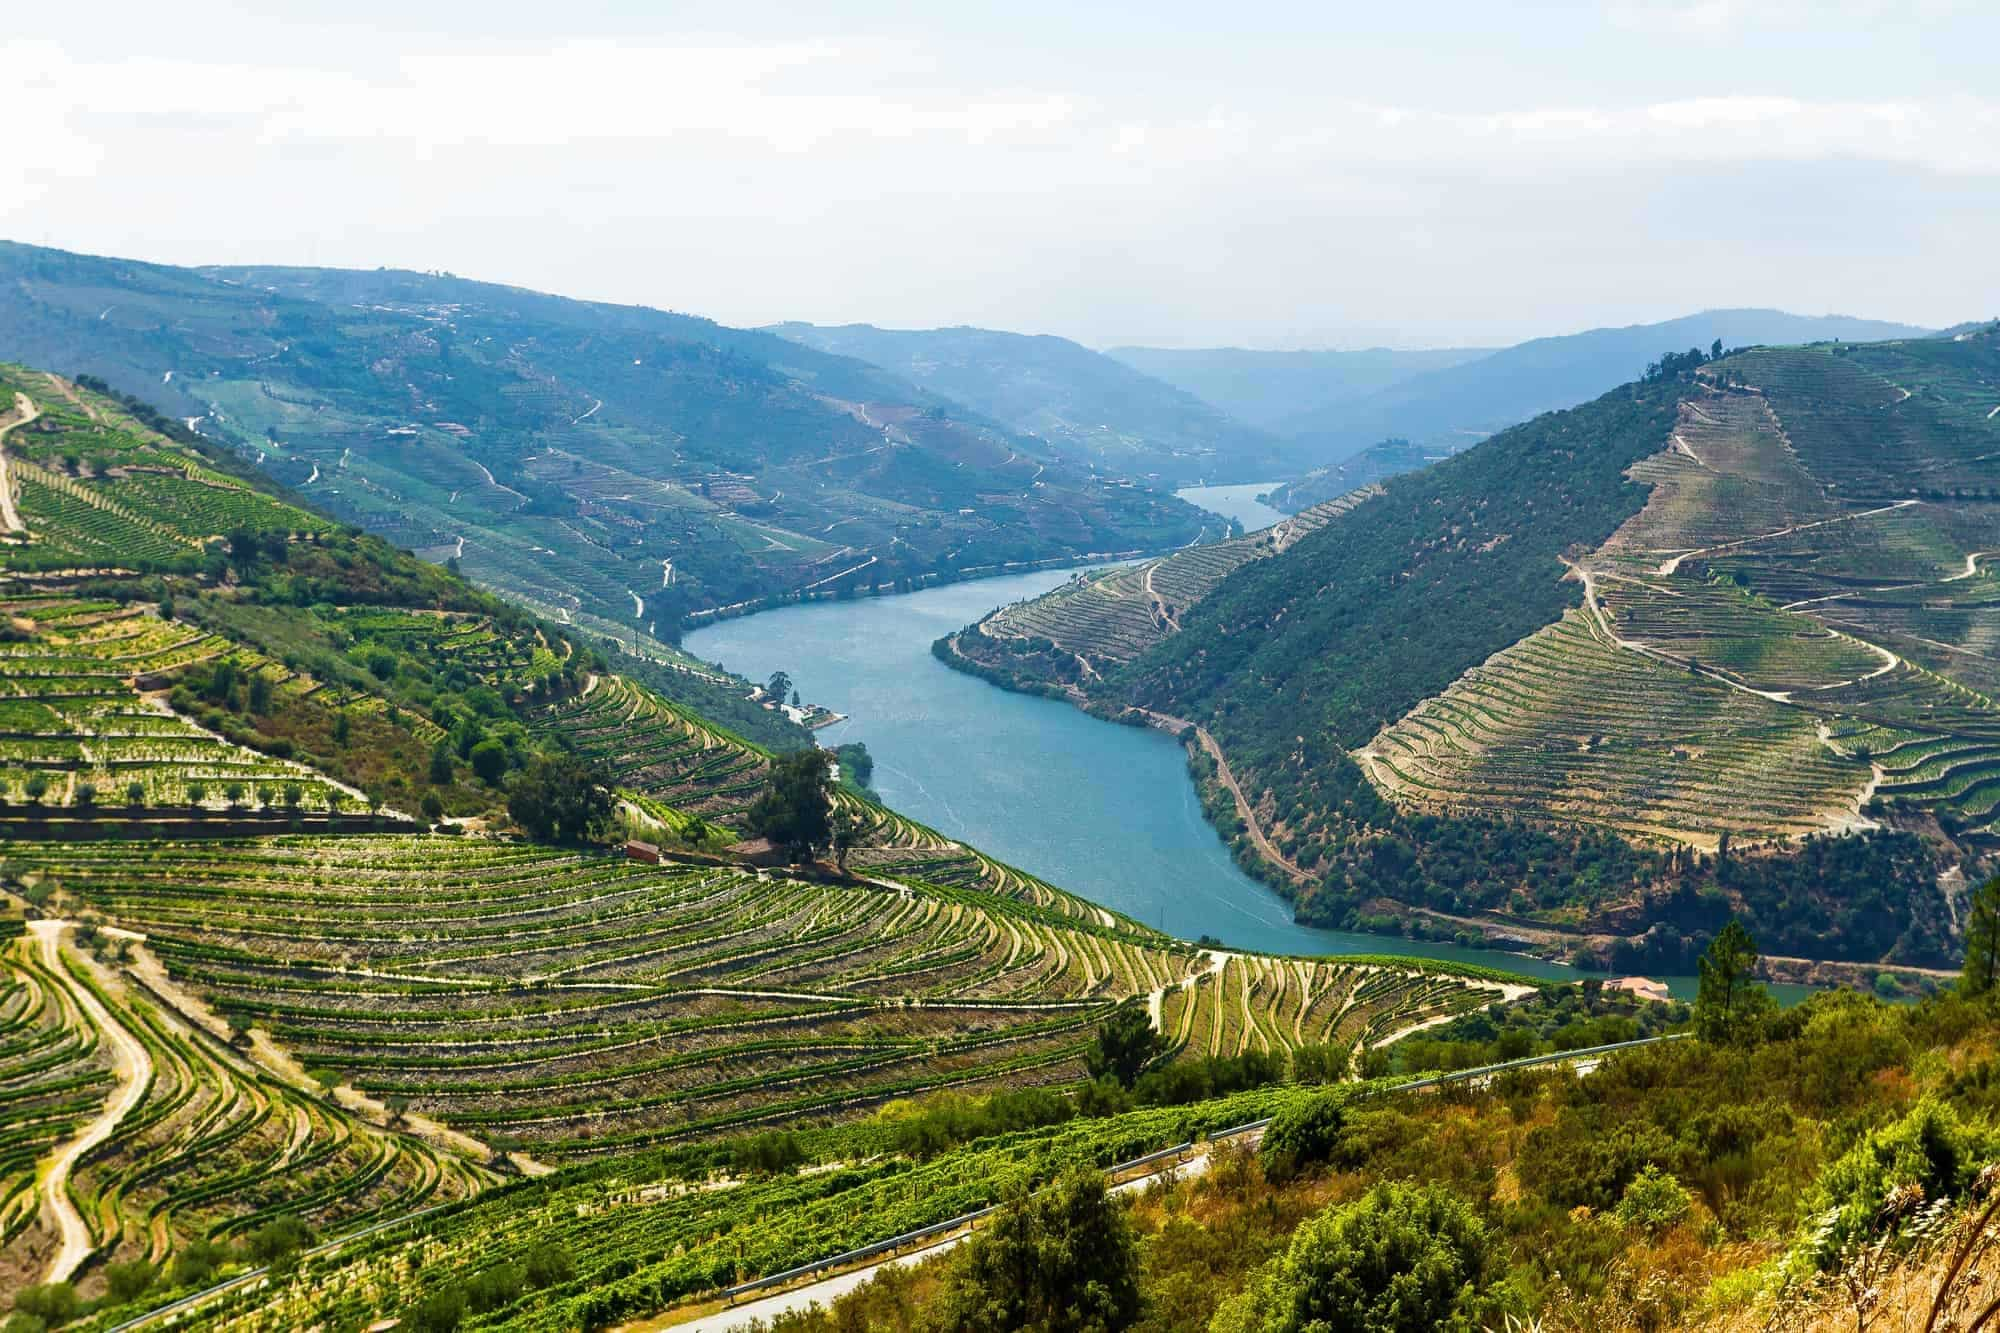 Wine fields almost dipping the toes into the Douro floden